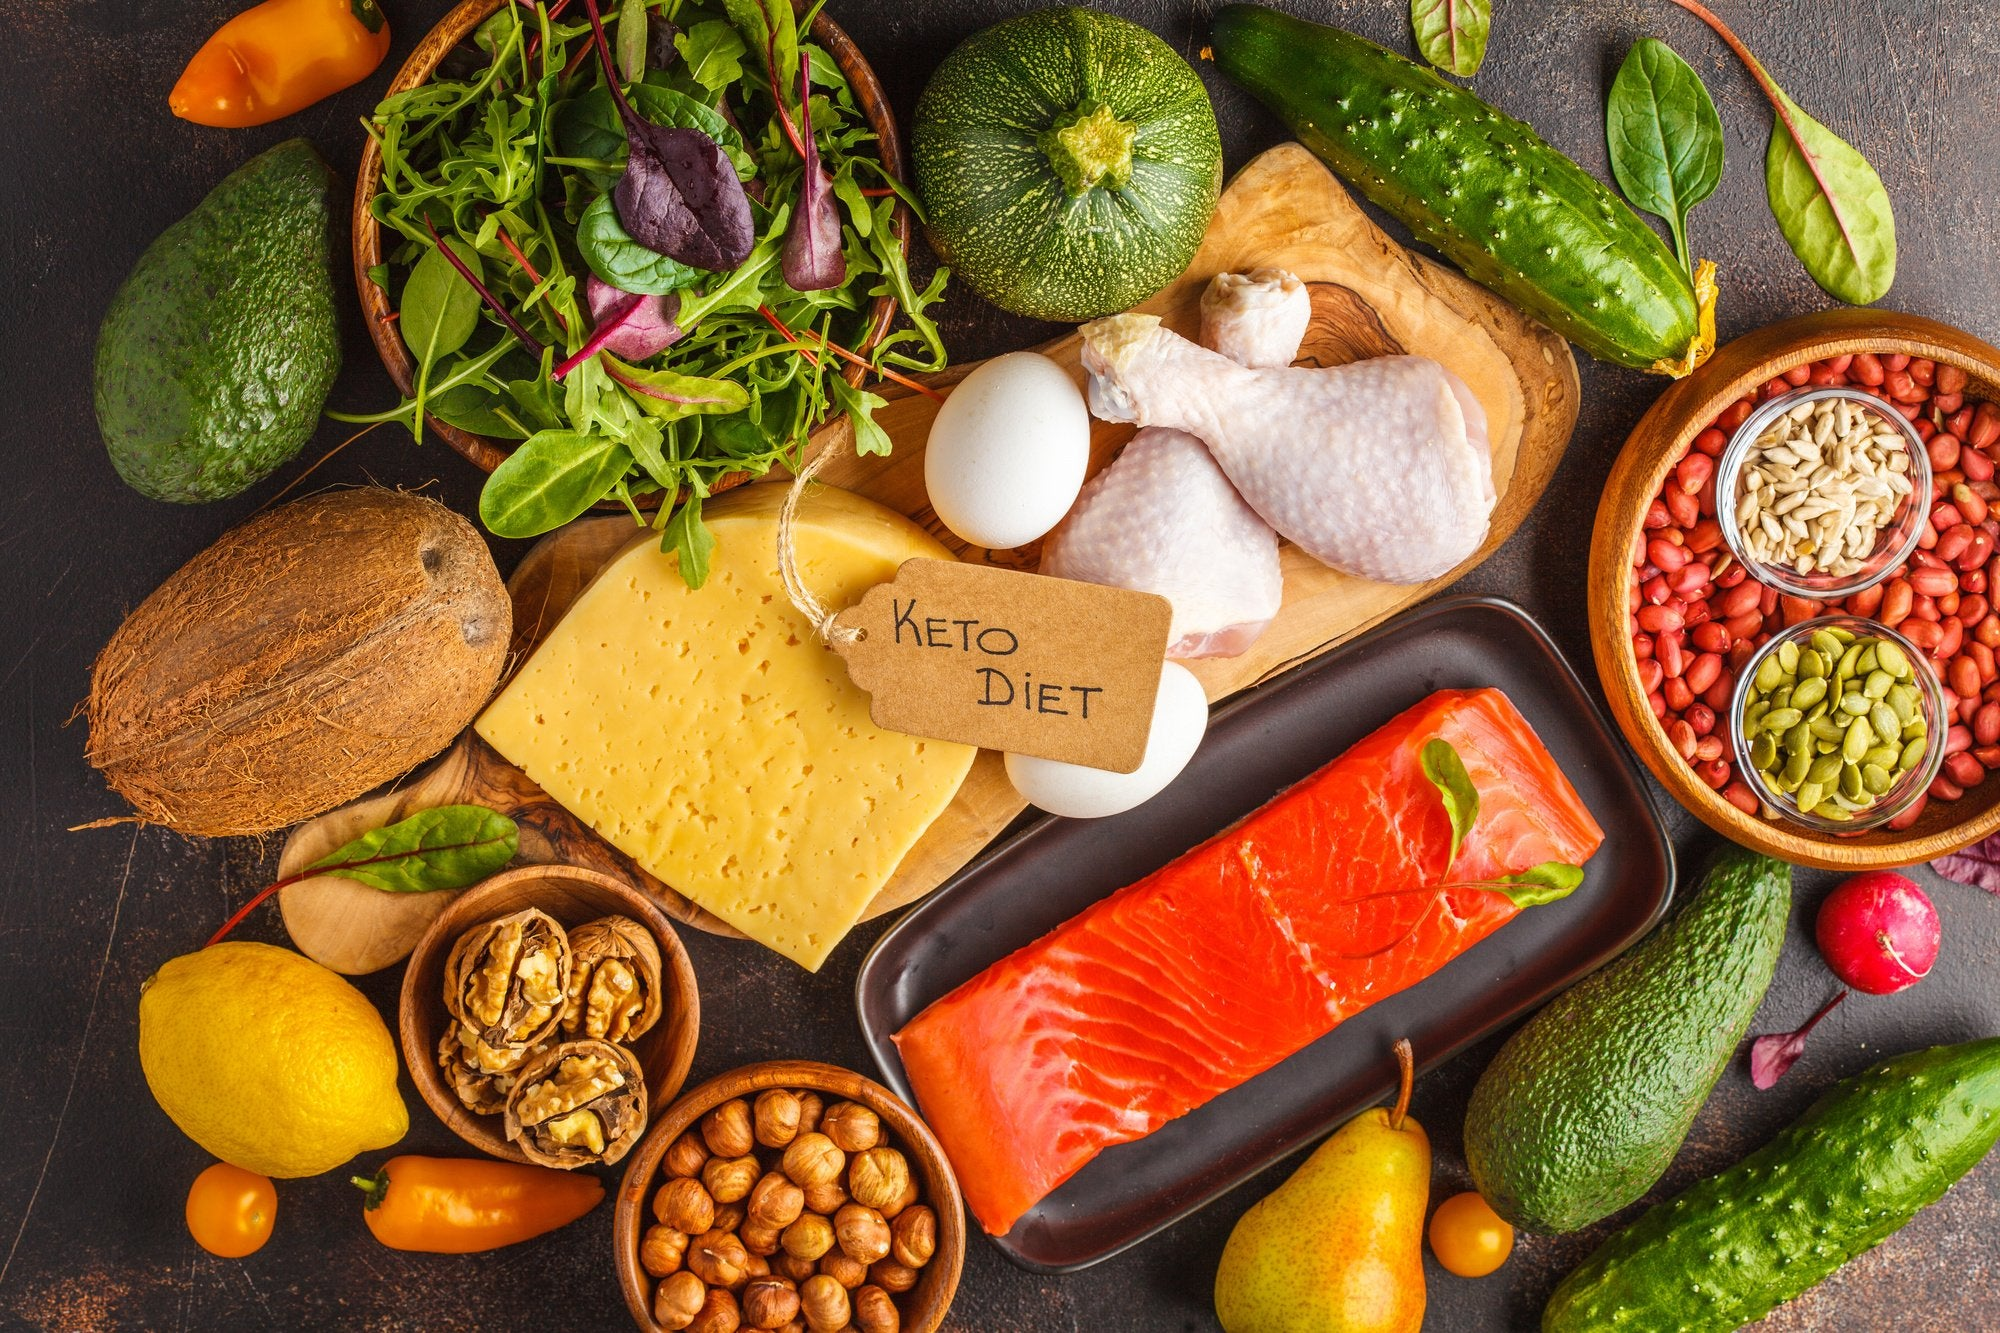 Is the Keto Diet Good or Bad If You Have a Health Condition?